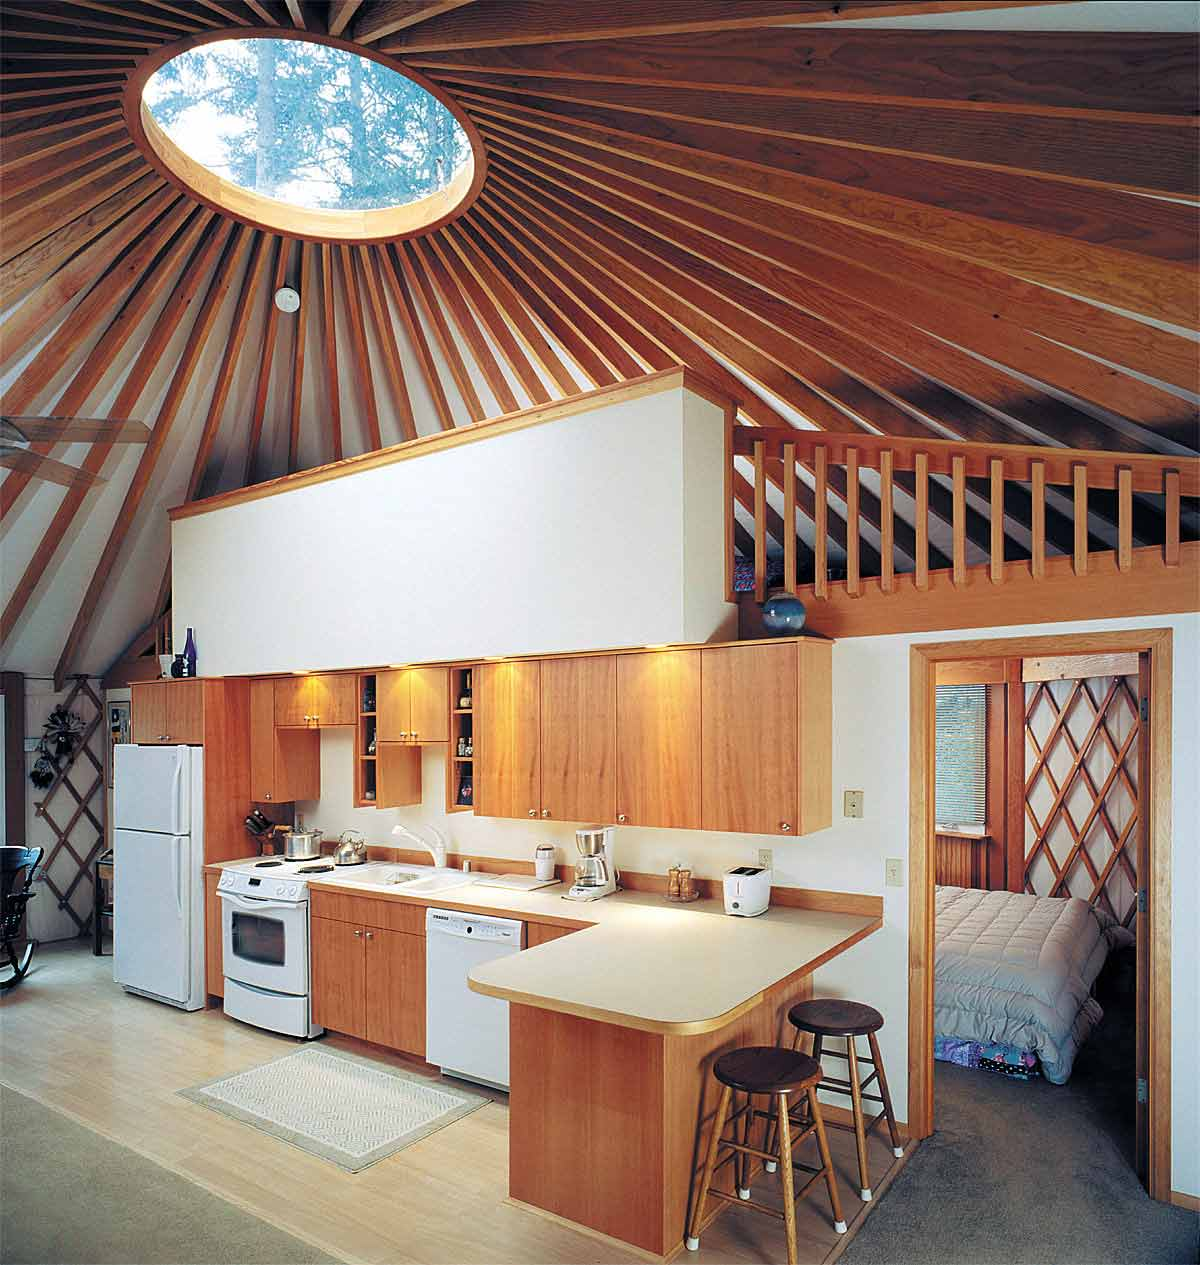 Rue de emily yes to yurts for Yurt interior designs